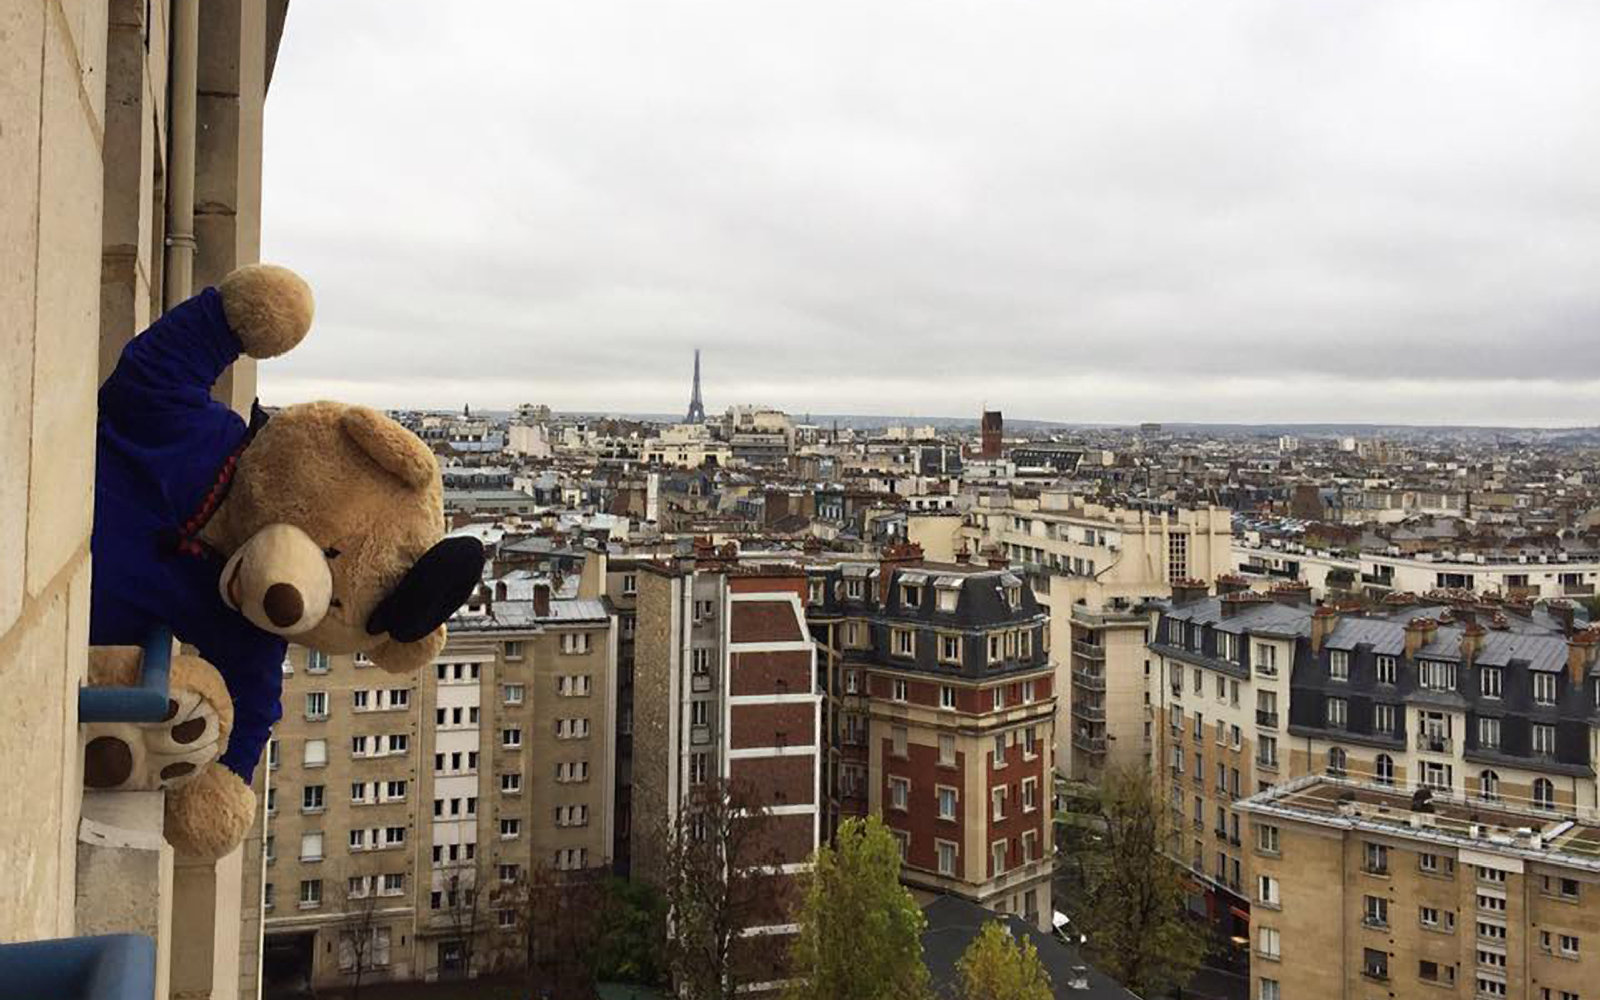 Teddy bear enjoying the views in Paris